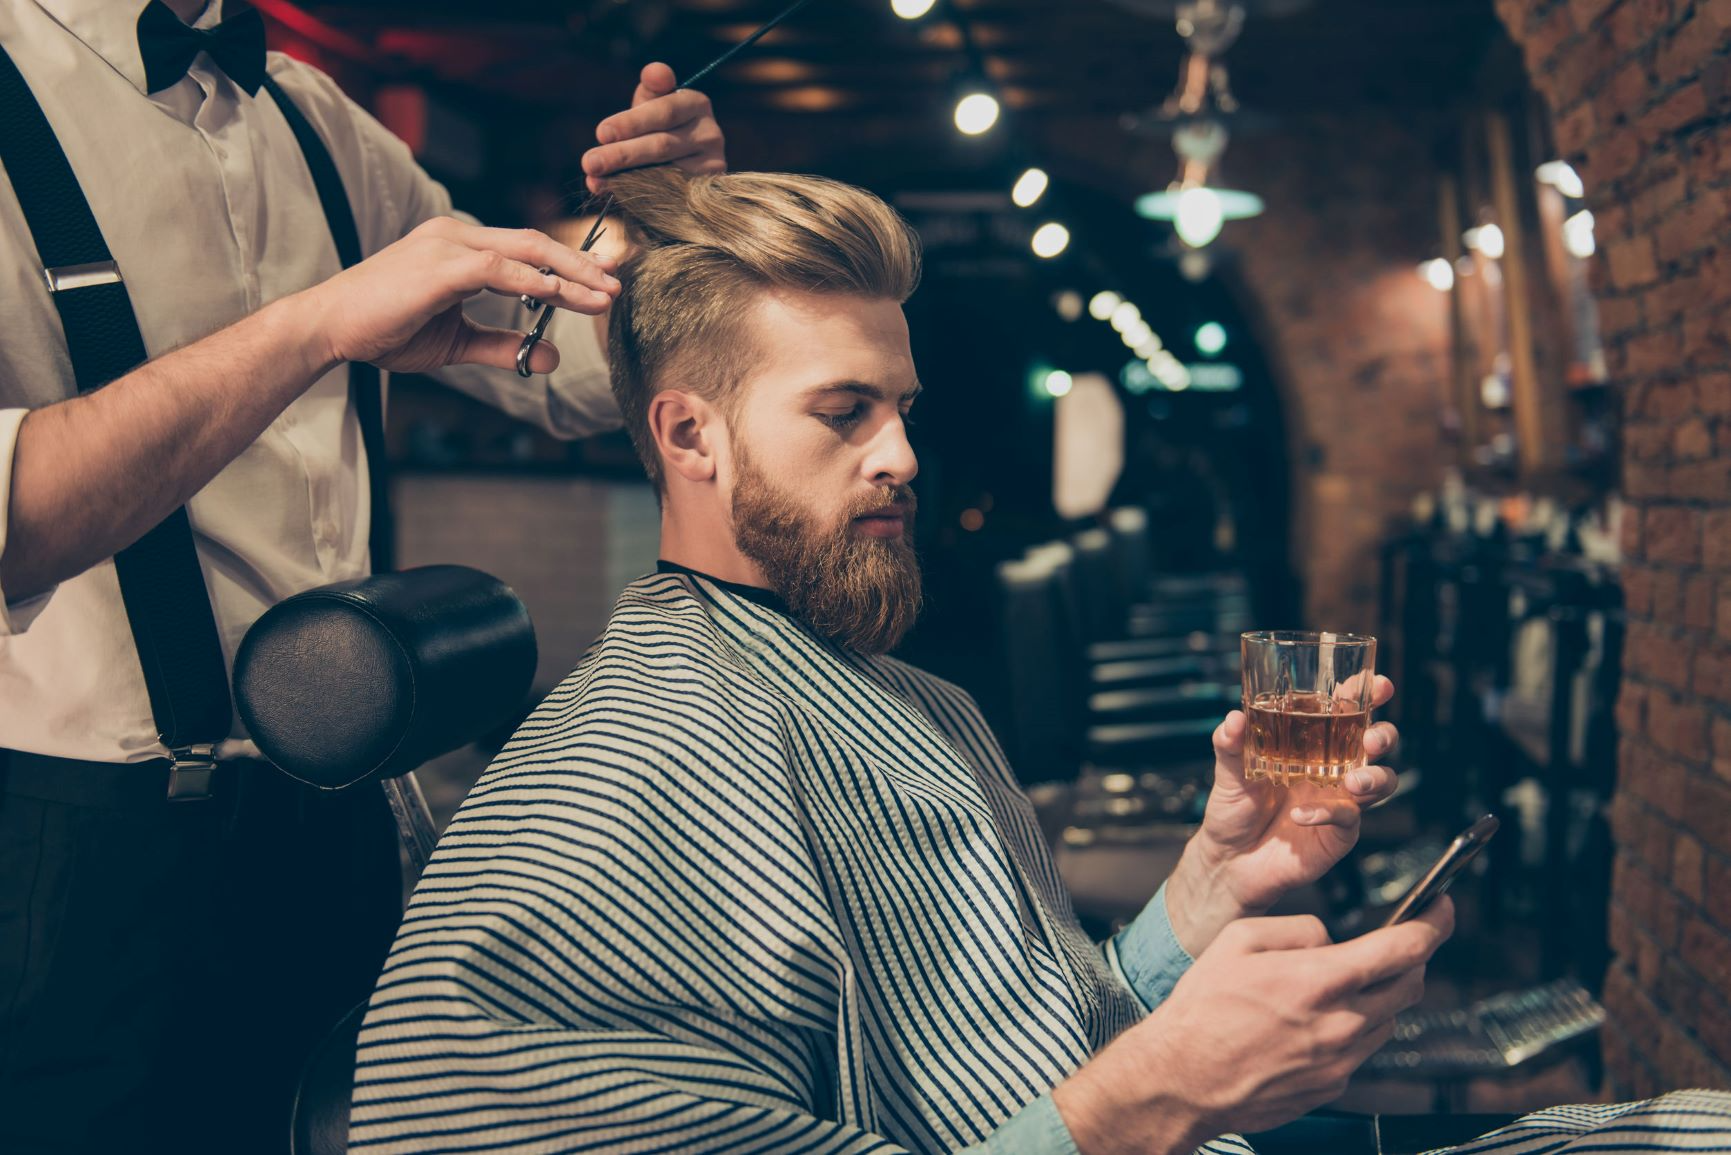 Man receiving undercut haircut from barber, holding glass and cellphone